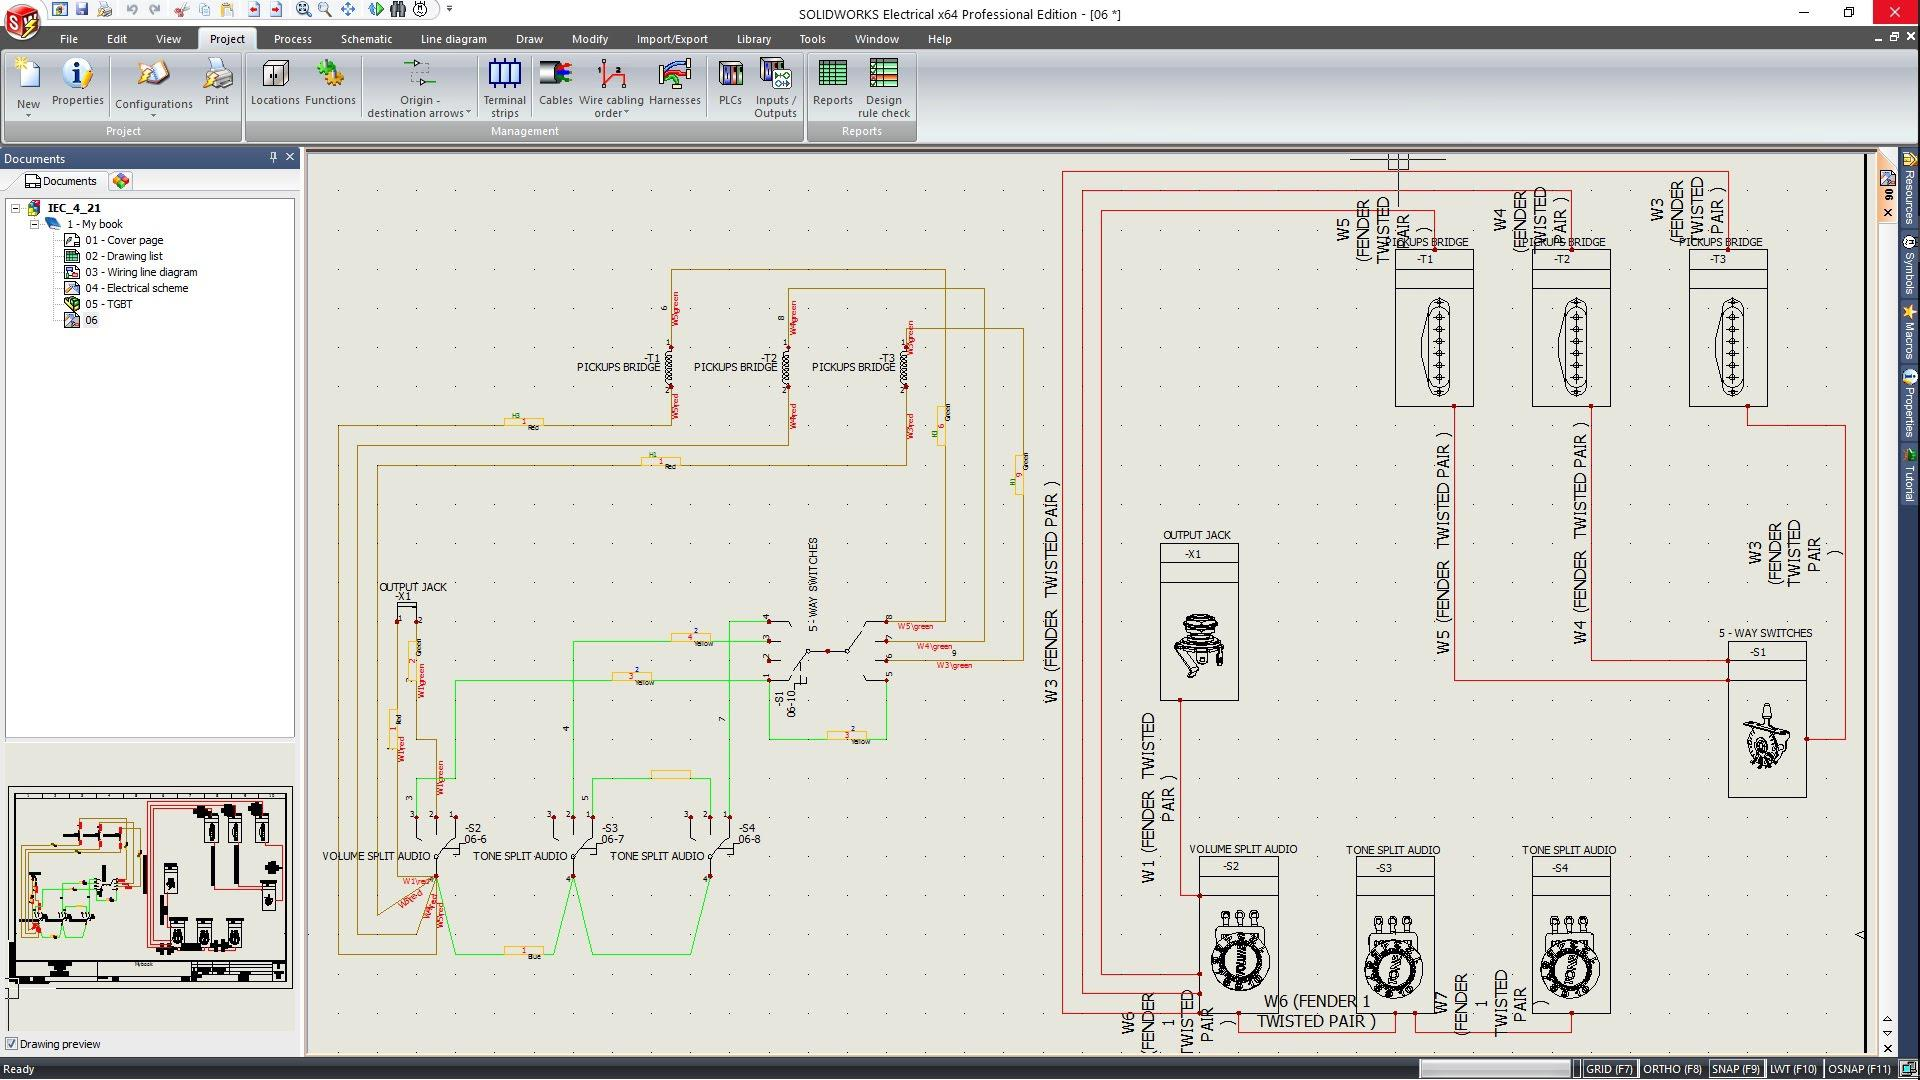 SOLIDWORKS Electrical Reseller|SolidWorks Reseller Chennai ... on electrical plan design, electrical bid, electrical training, circuit board design, mechanical design, electrical cable design, service design, electrical graphics, electrical piping design, electrical transformer design, software design, electrical wiring diagrams, electrical cad design, electrical box design, electrical system design, electrical power design, electrical installation design, specifications design, electrical layout design, electrical switch design,